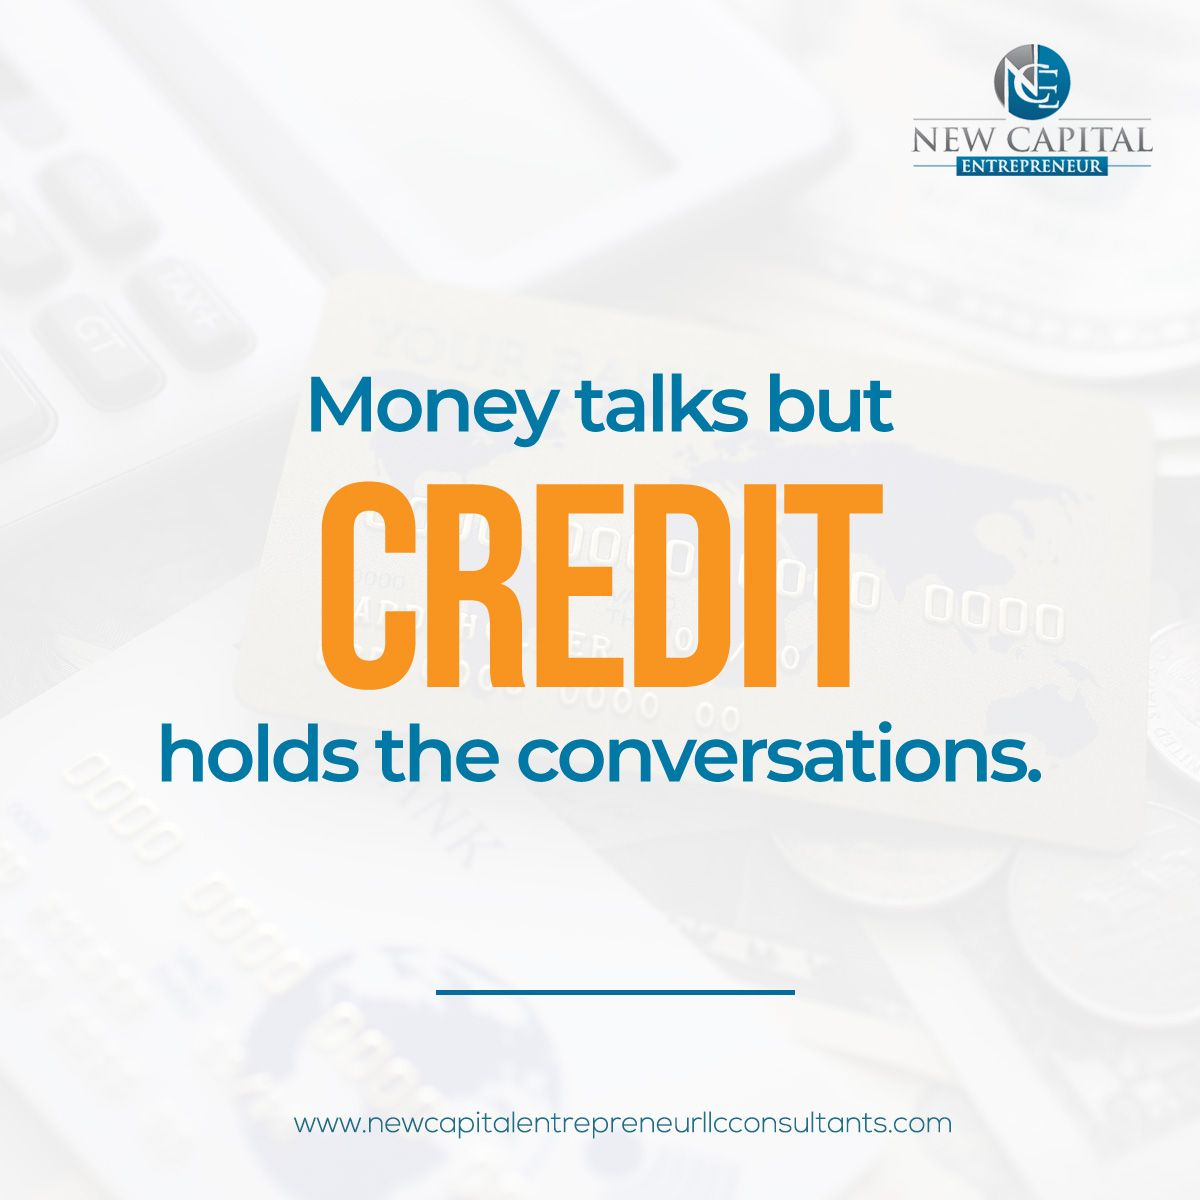 To Get An Immediate Loan You D Need To Have Either Consistent Cash Flow Good Personal Credit Or Co In 2020 Finance Loans Small Business Loans Credit Repair Companies